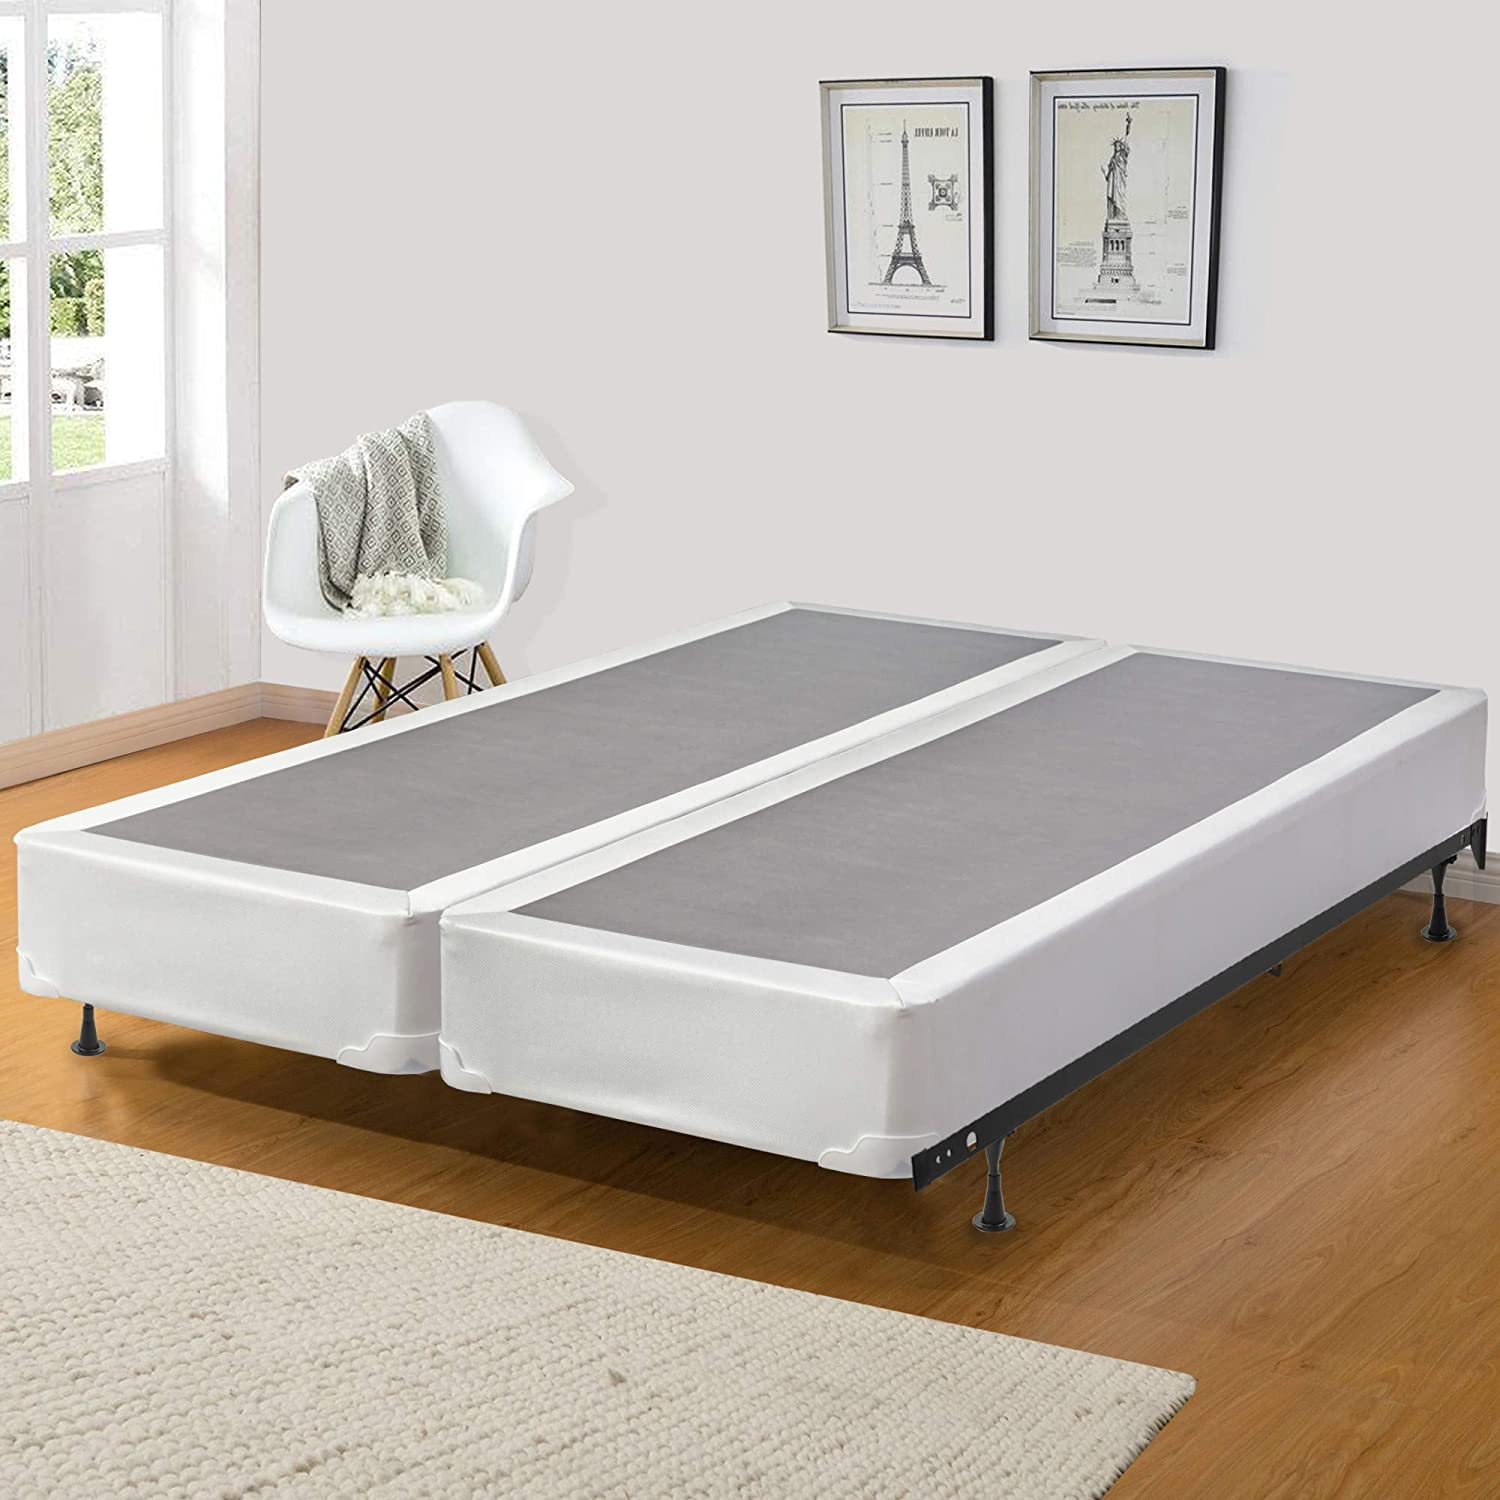 Mattress Solution 8 Assembled Split Box Spring/Foundation Set for Mattress, Extra Pedic Collection, 8 Fully, Twin Size